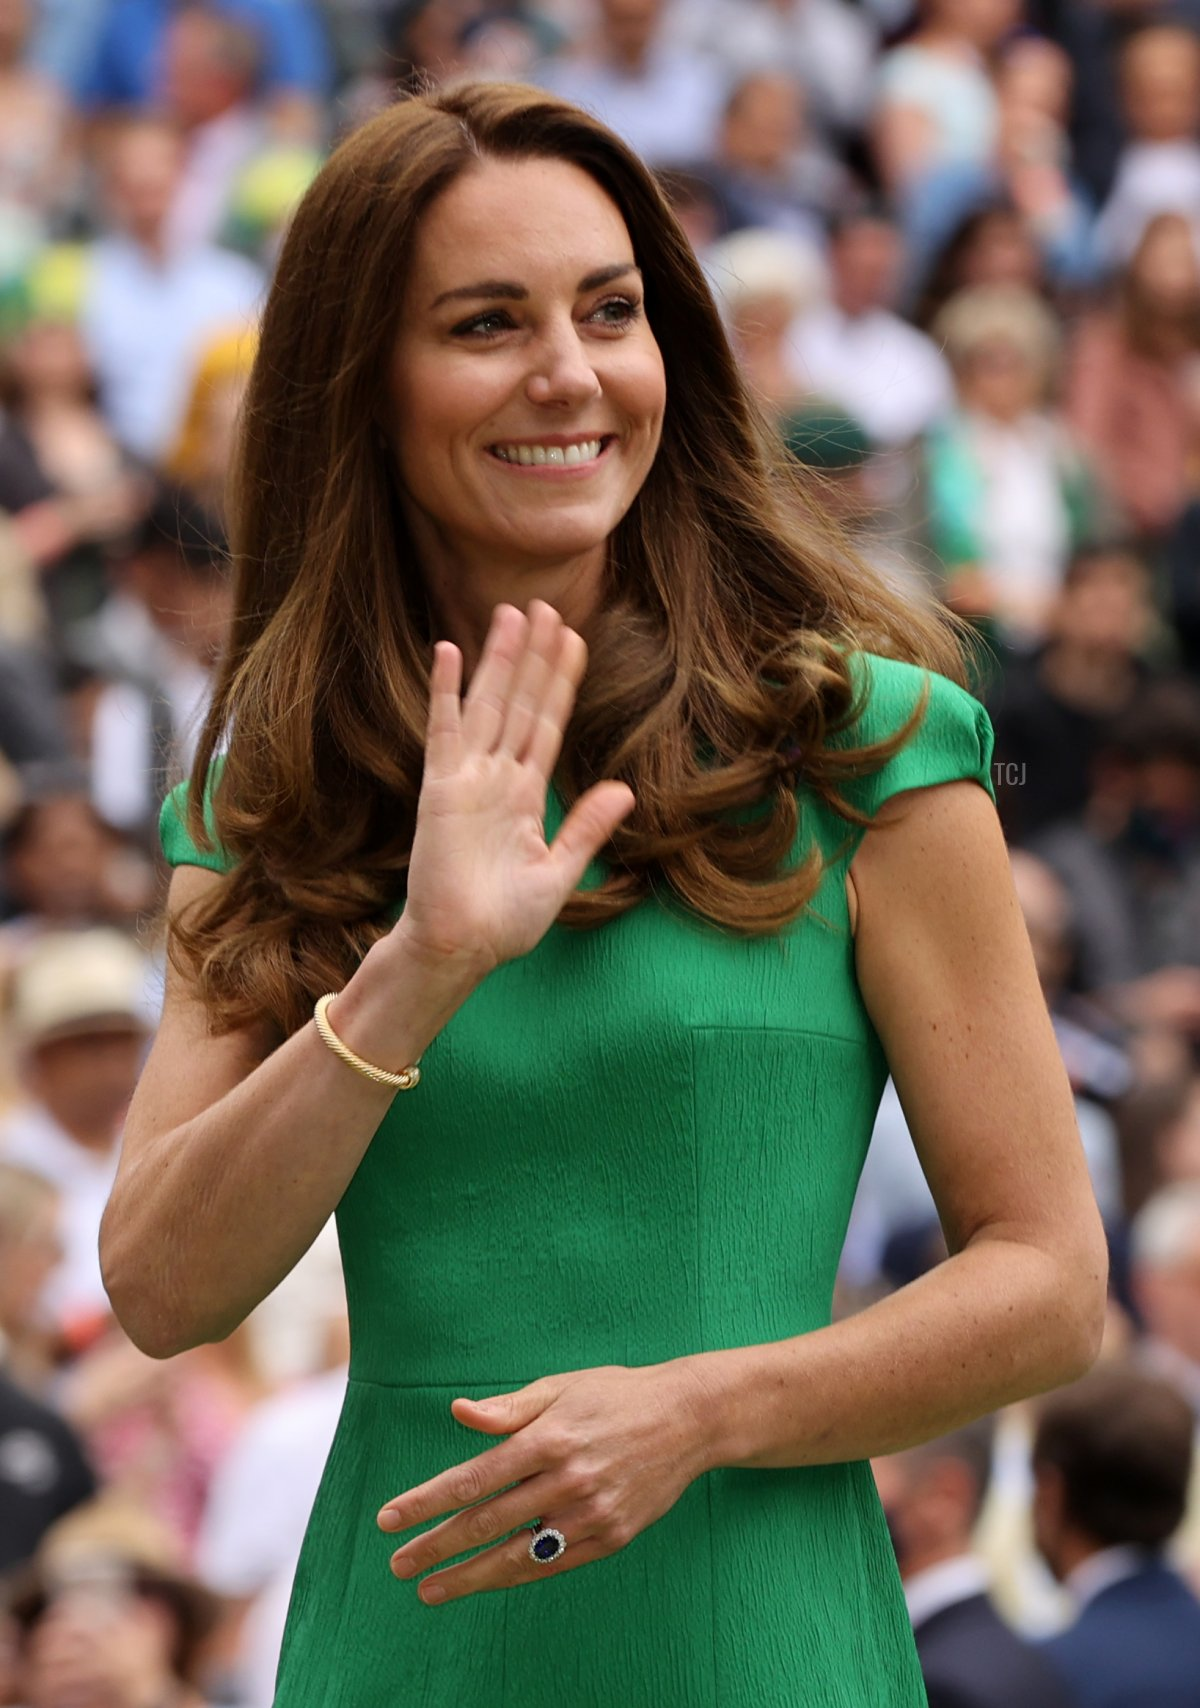 HRH Catherine, The Duchess of Cambridge waves to the crowd after the Ladies' Singles Final match between Ashleigh Barty of Australia and Karolina Pliskova of The Czech Republic on Day Twelve of The Championships - Wimbledon 2021 at All England Lawn Tennis and Croquet Club on July 10, 2021 in London, England